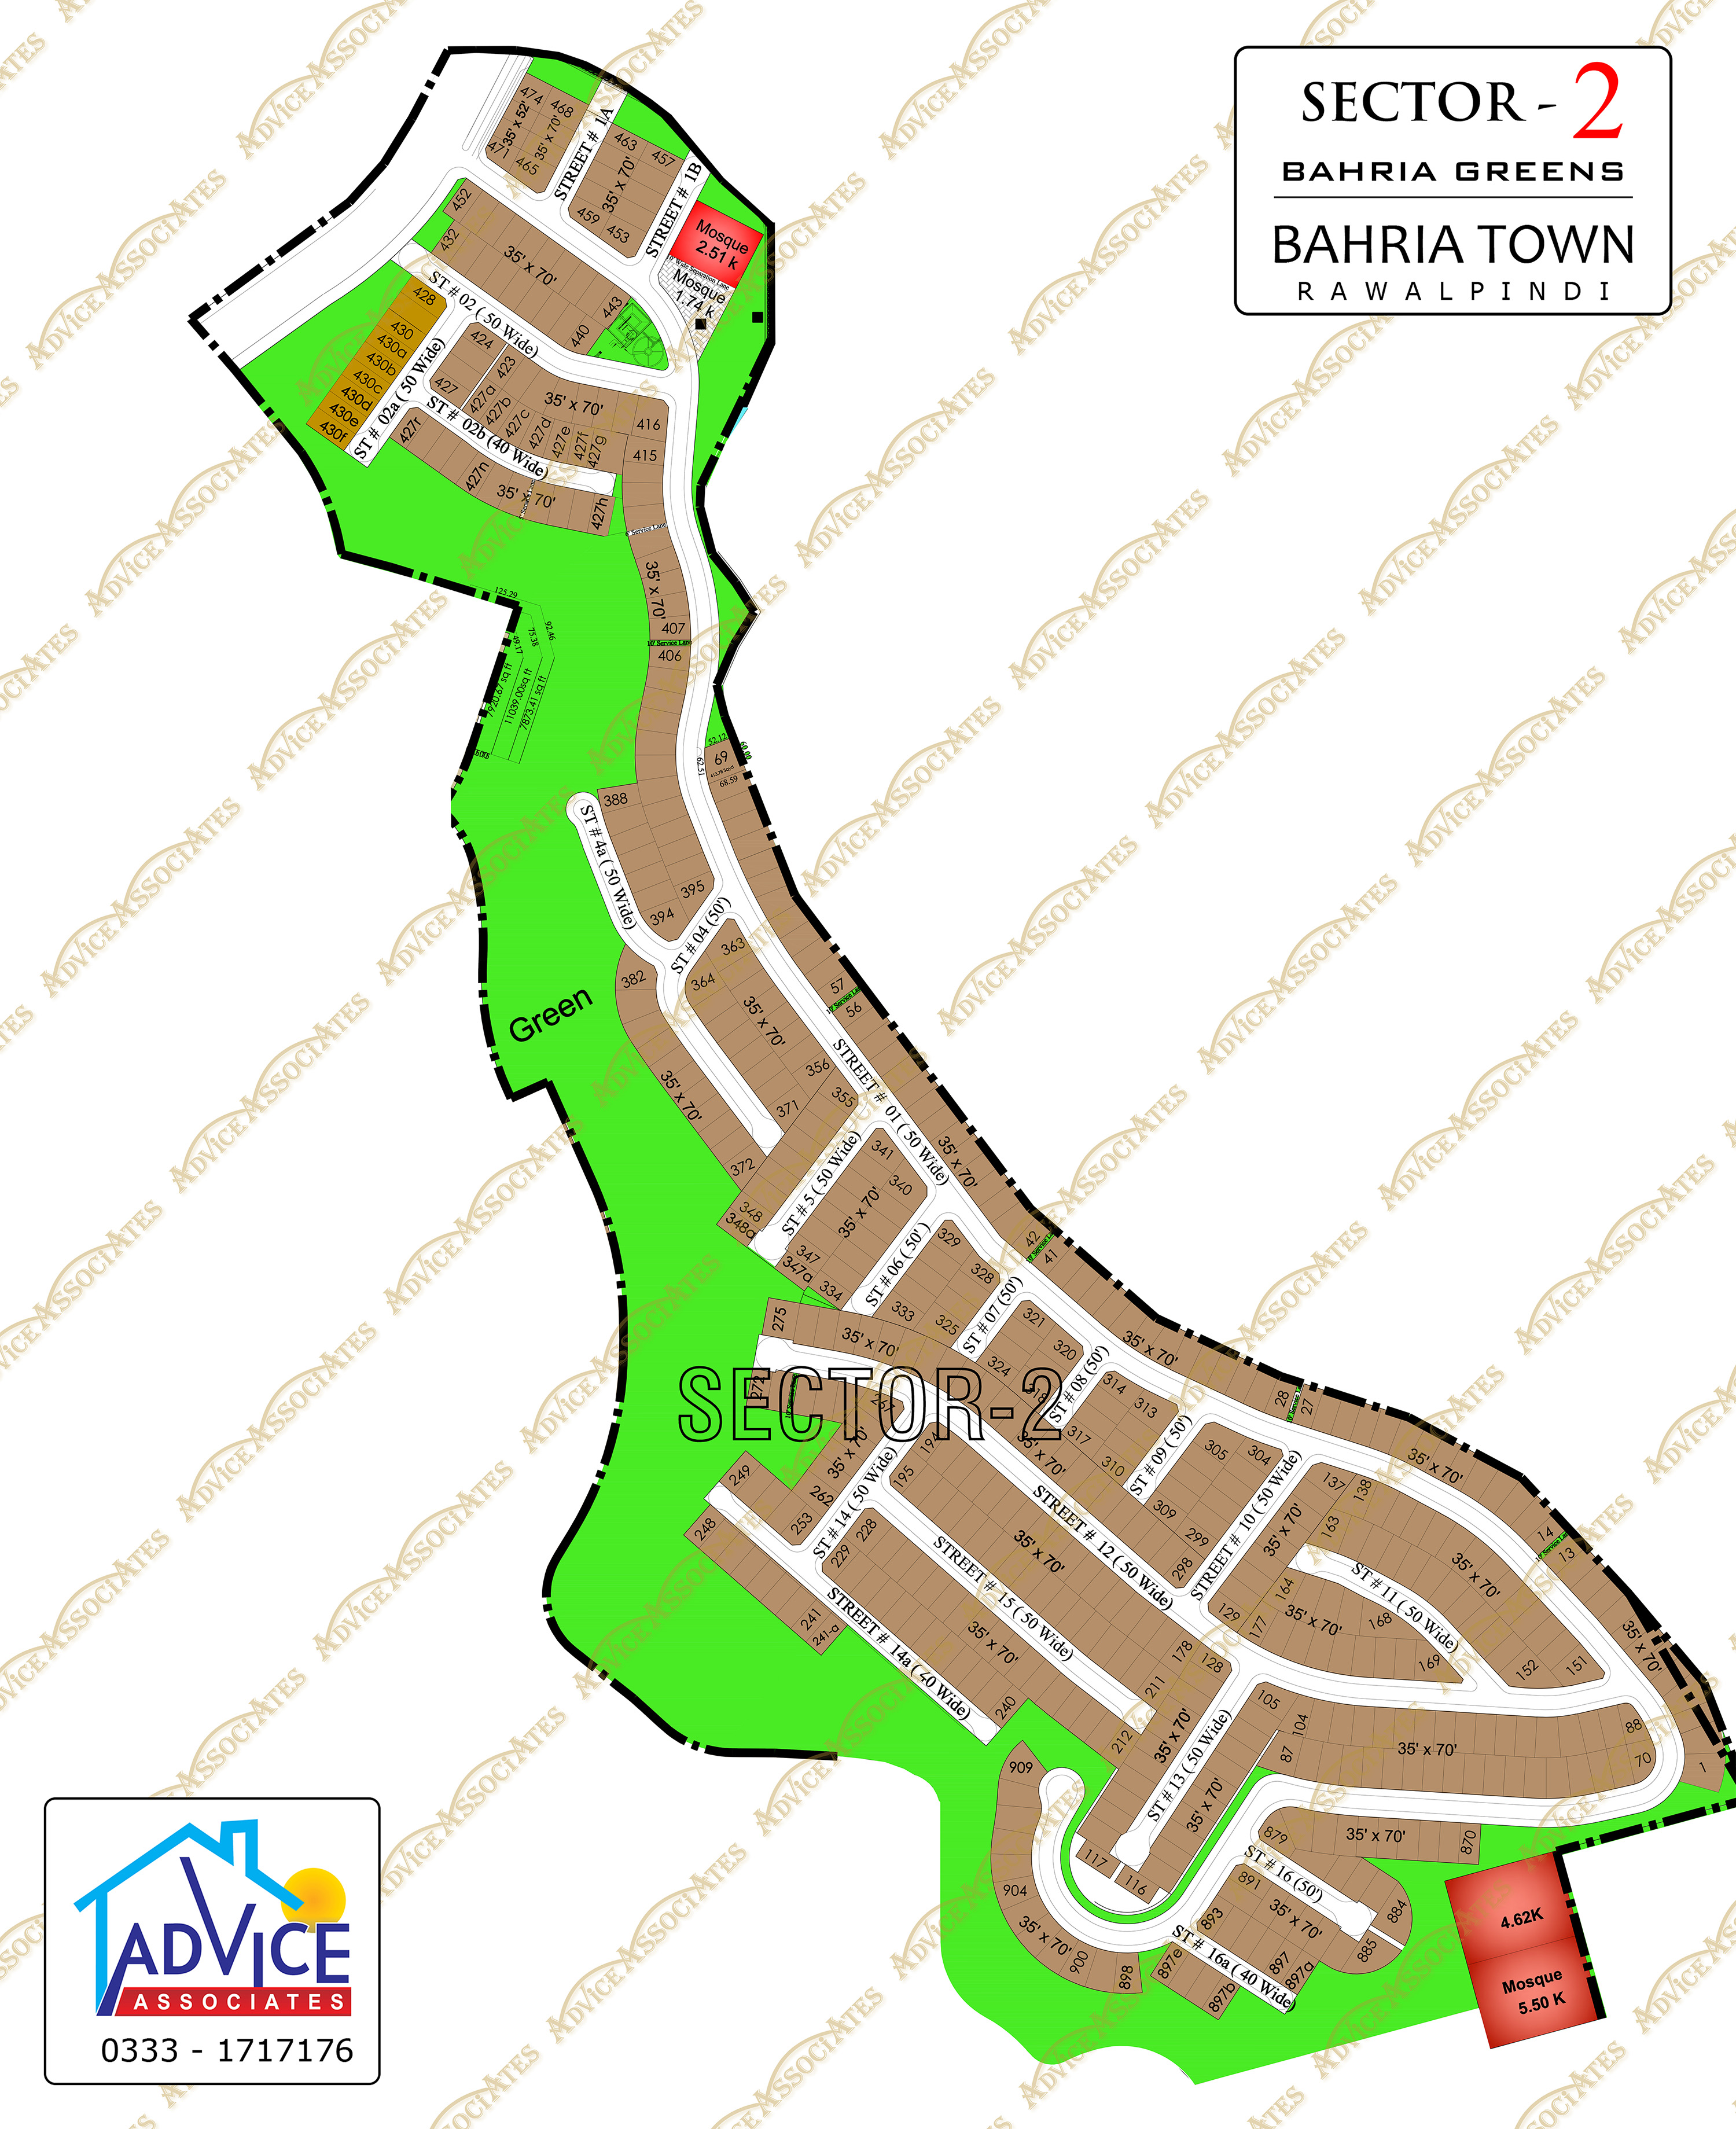 Bahria Greens Sector 2